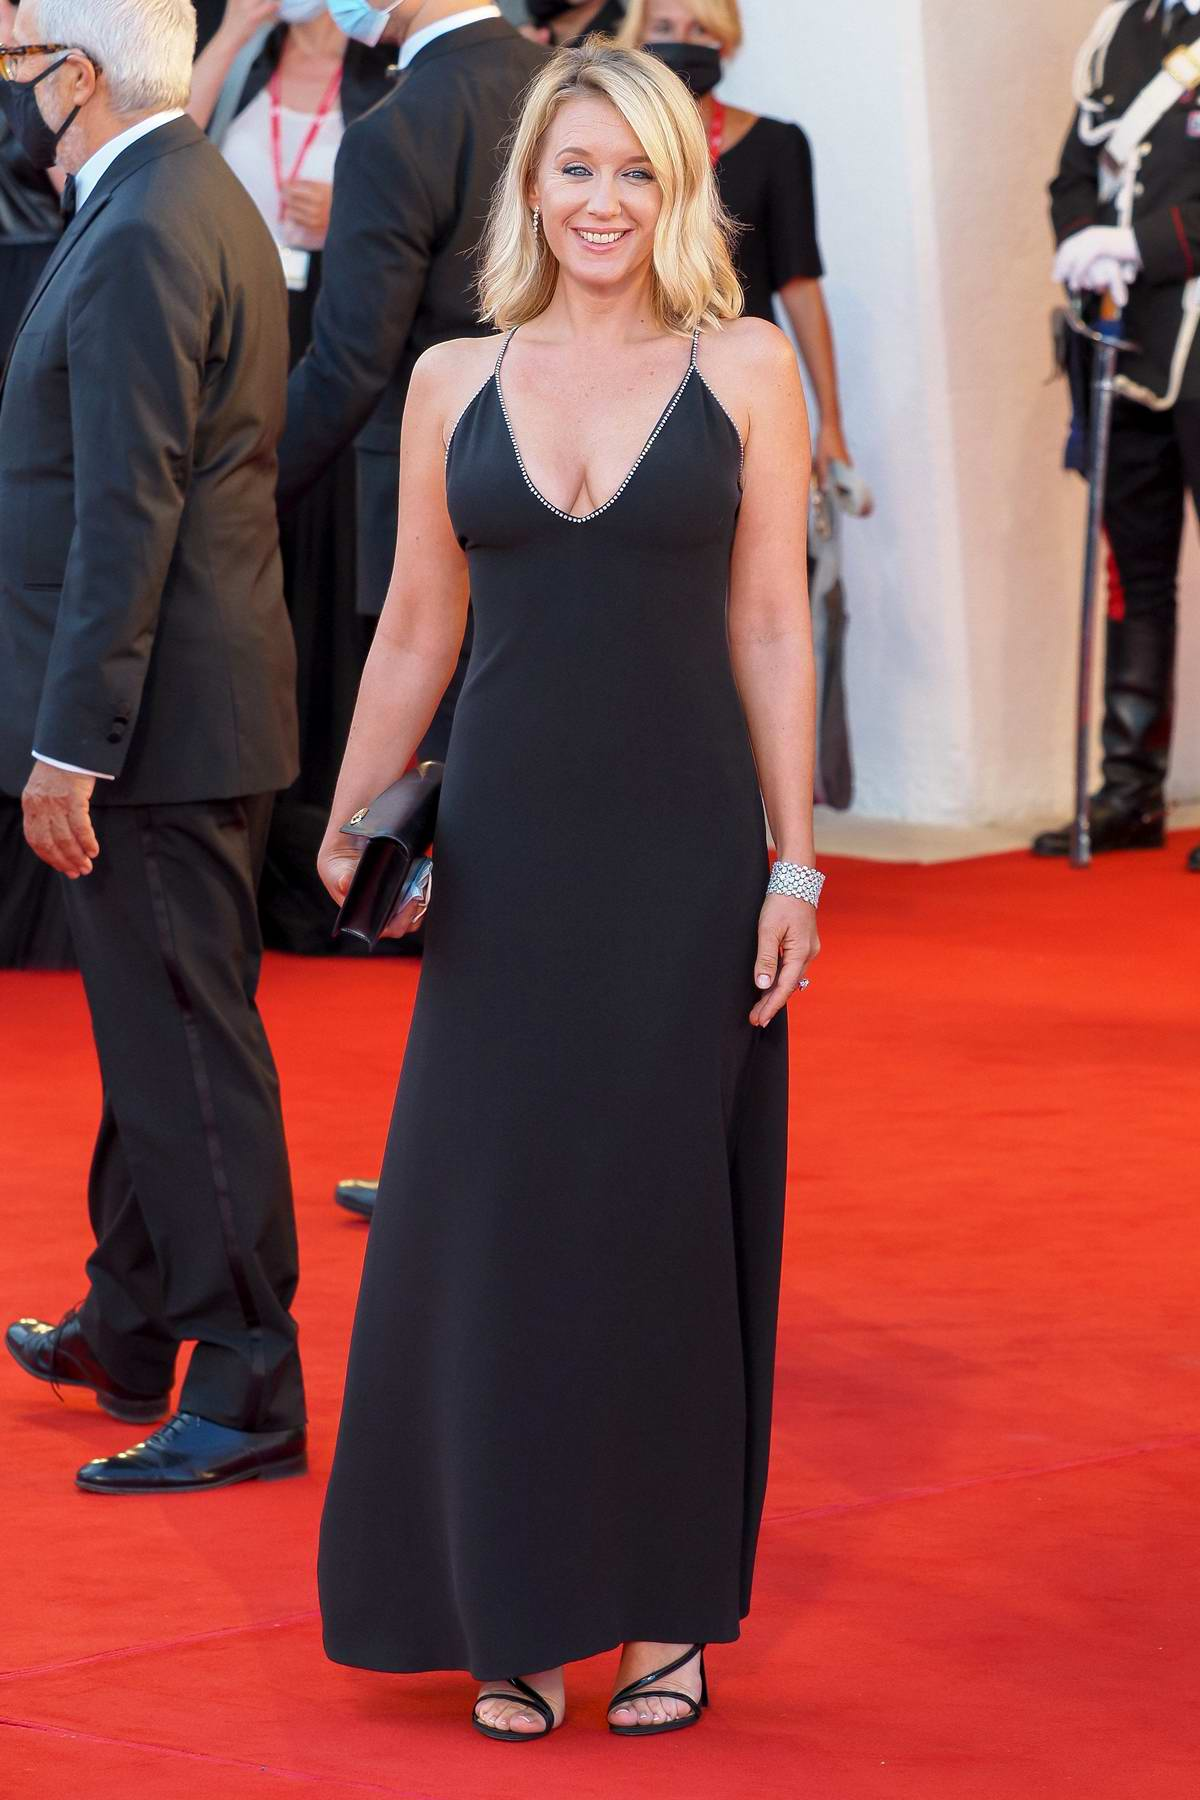 Ludivine Sagnier attends the Opening Ceremony and 'Lacci' Premiere during the 77th Venice Film Festival in Venice, Italy